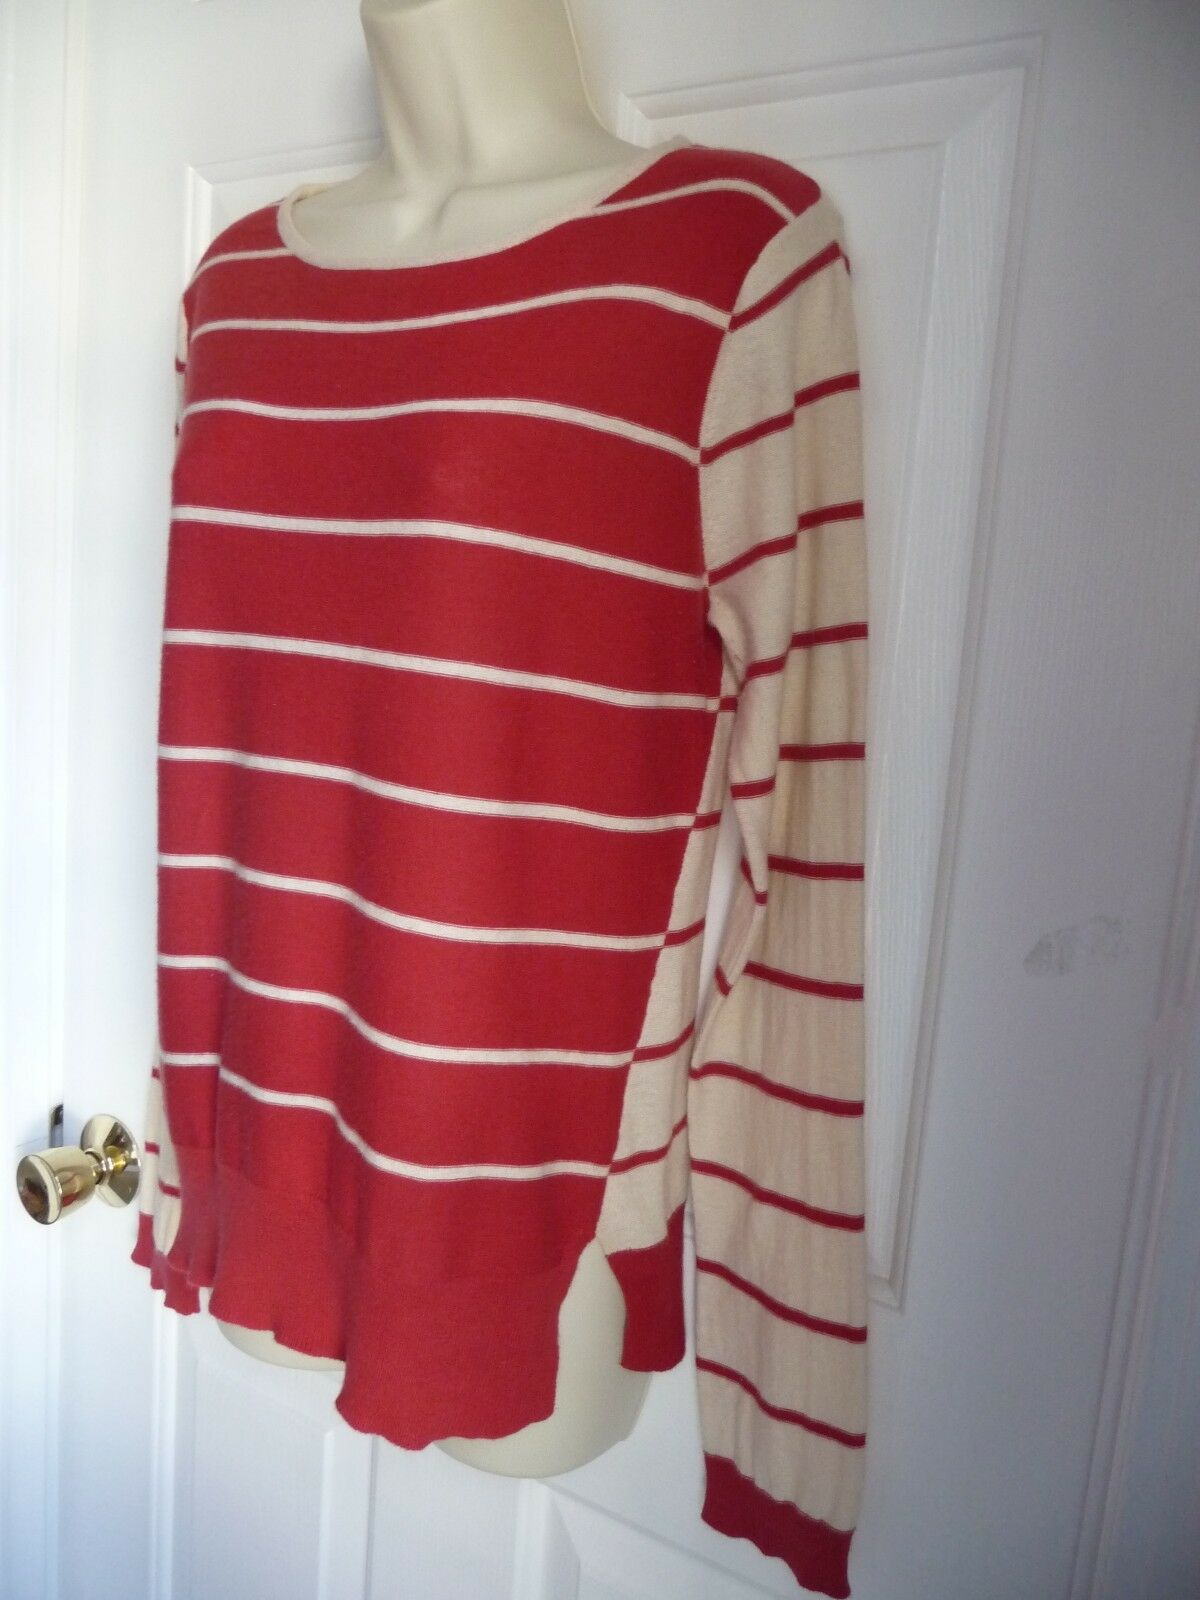 Sparrow Anthropologie L Sweater Reversed Stripy Pattern RED WHITE Left Side Slit